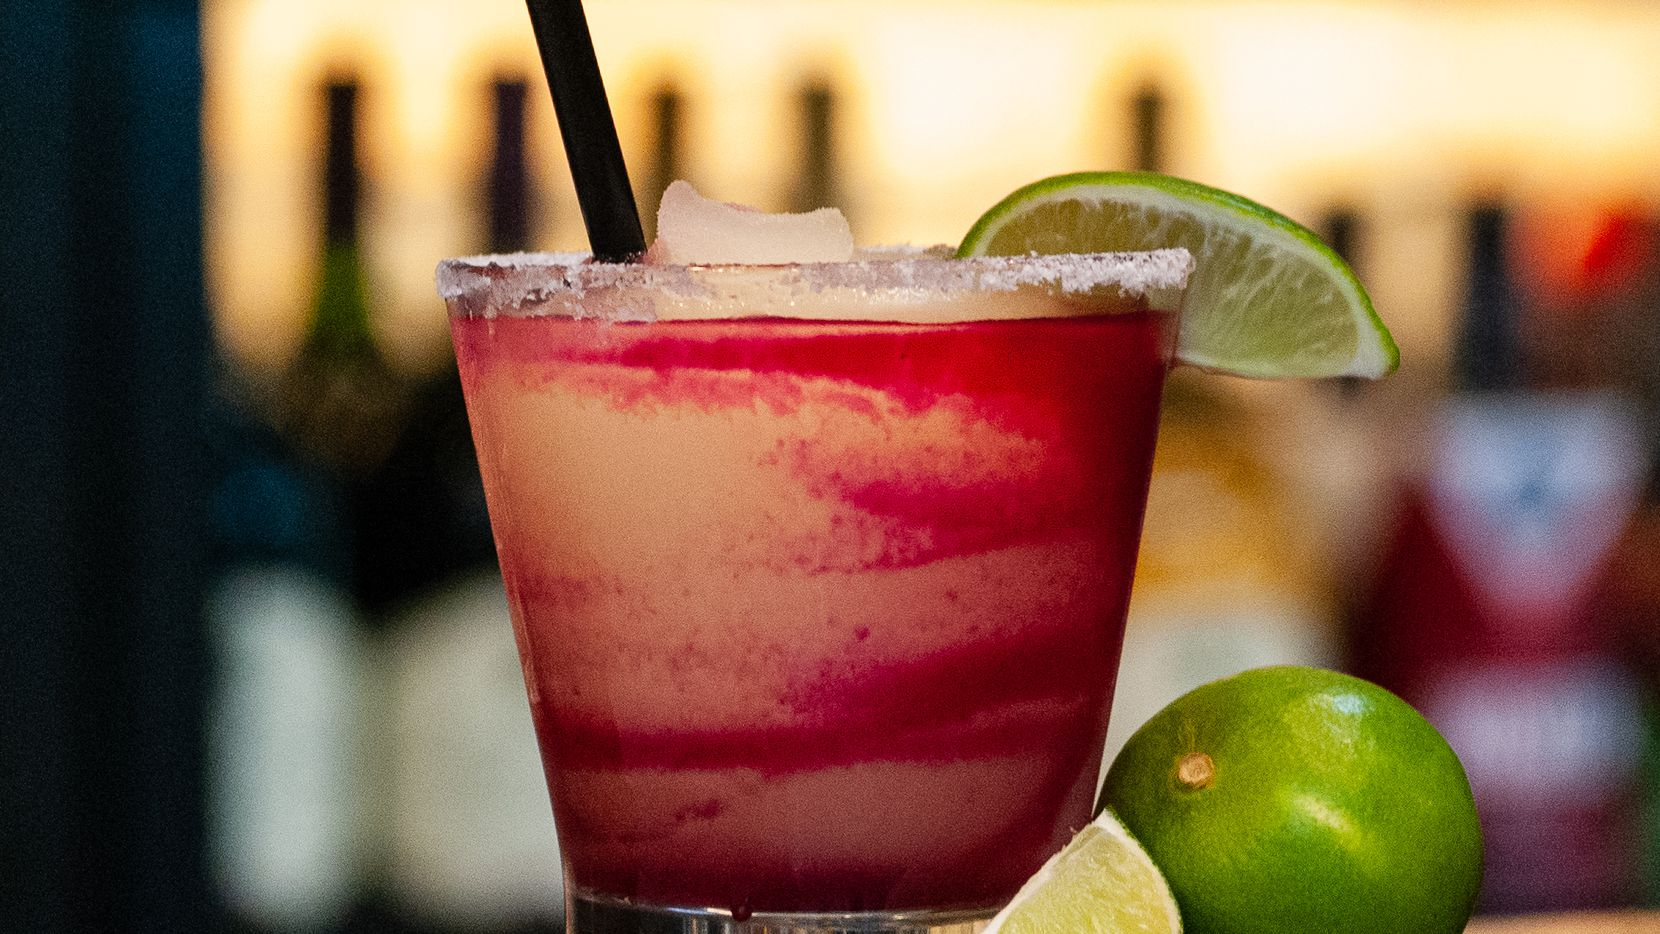 Fish City Grill will offer its Prickly Pear Margarita for $6 in celebration of National Margarita Day on Feb. 22, 2020.